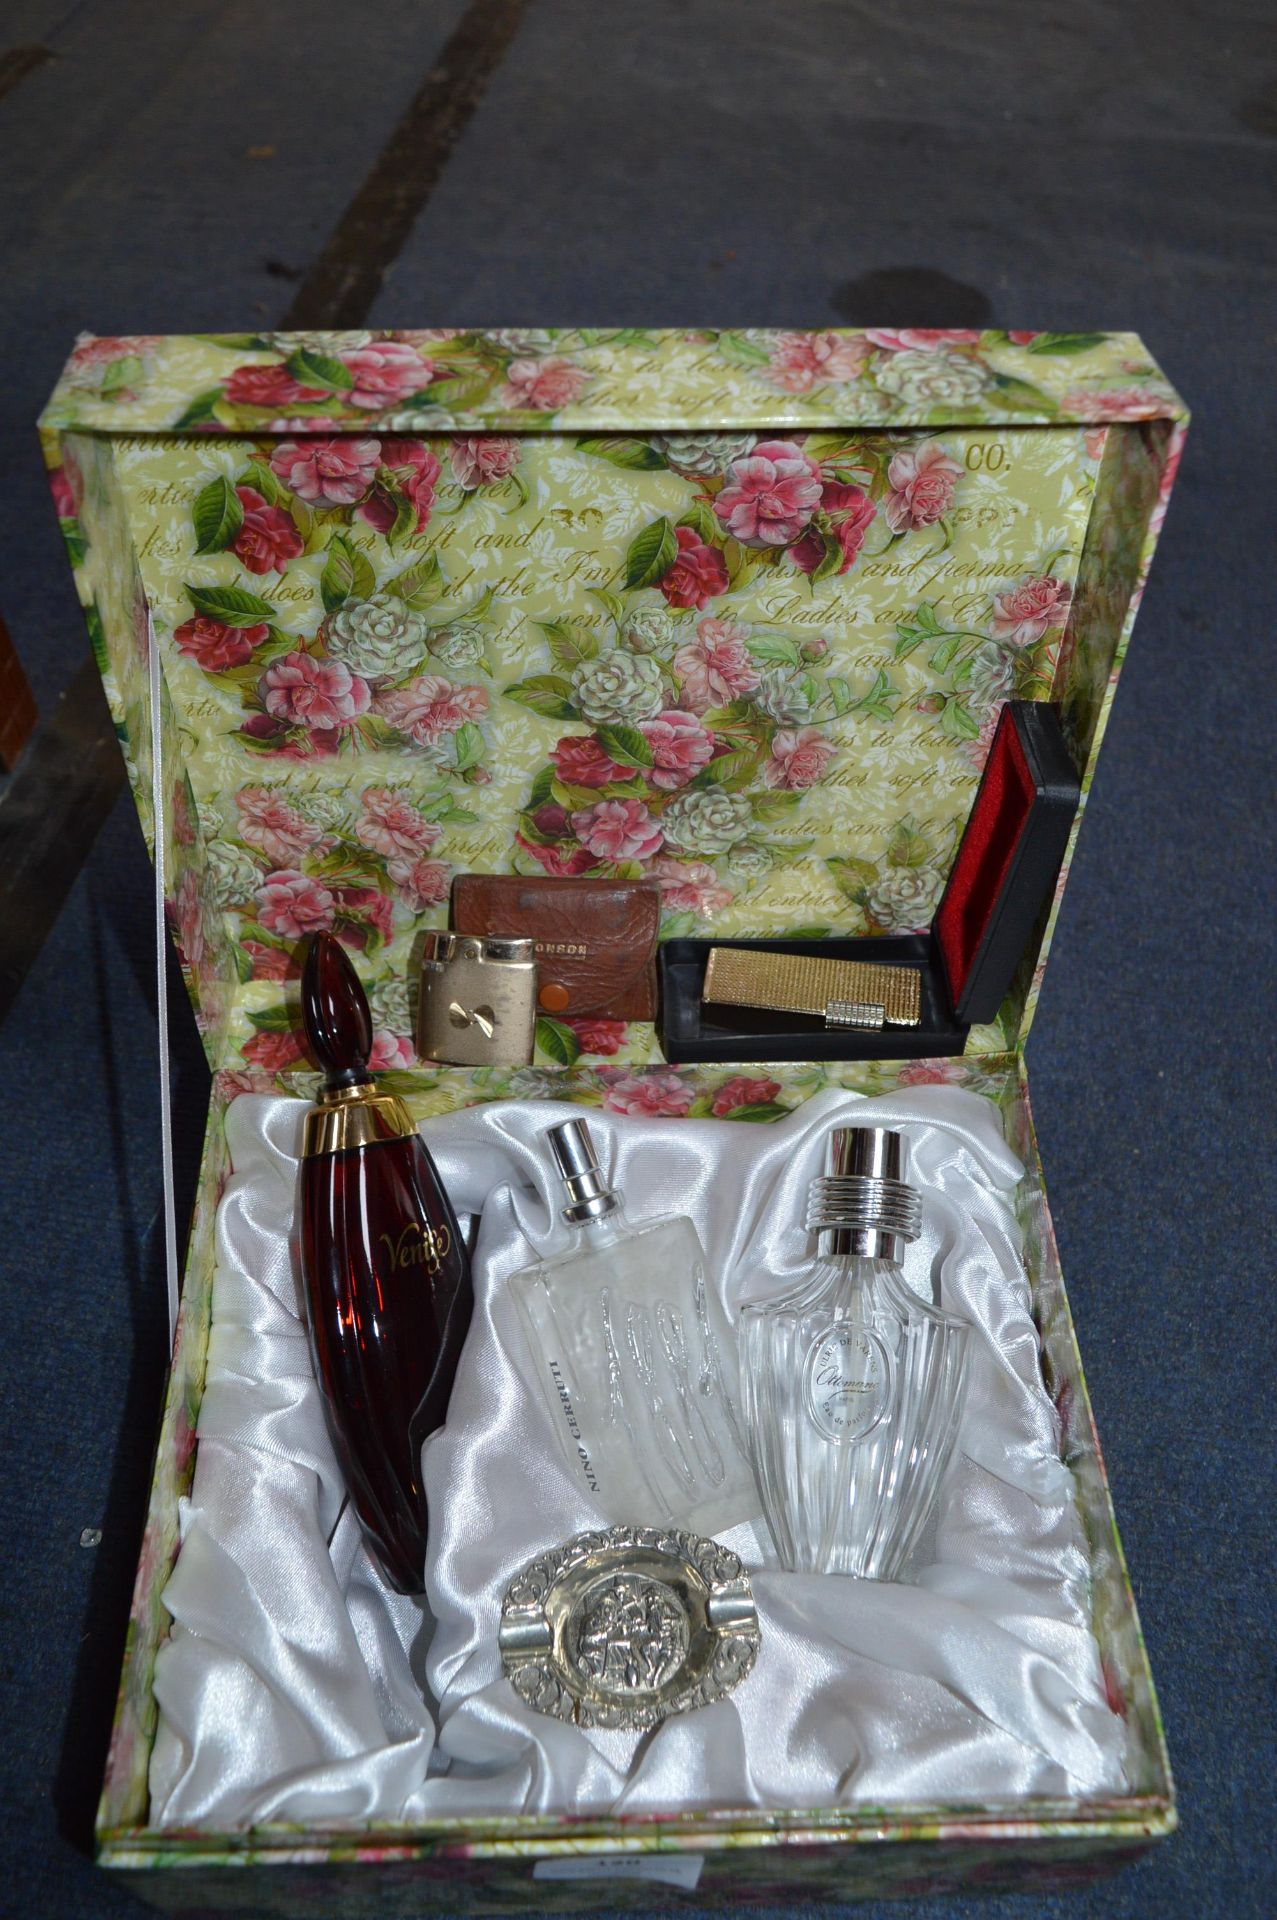 Lot 120 - Box of Glassware Scent Bottles, etc.